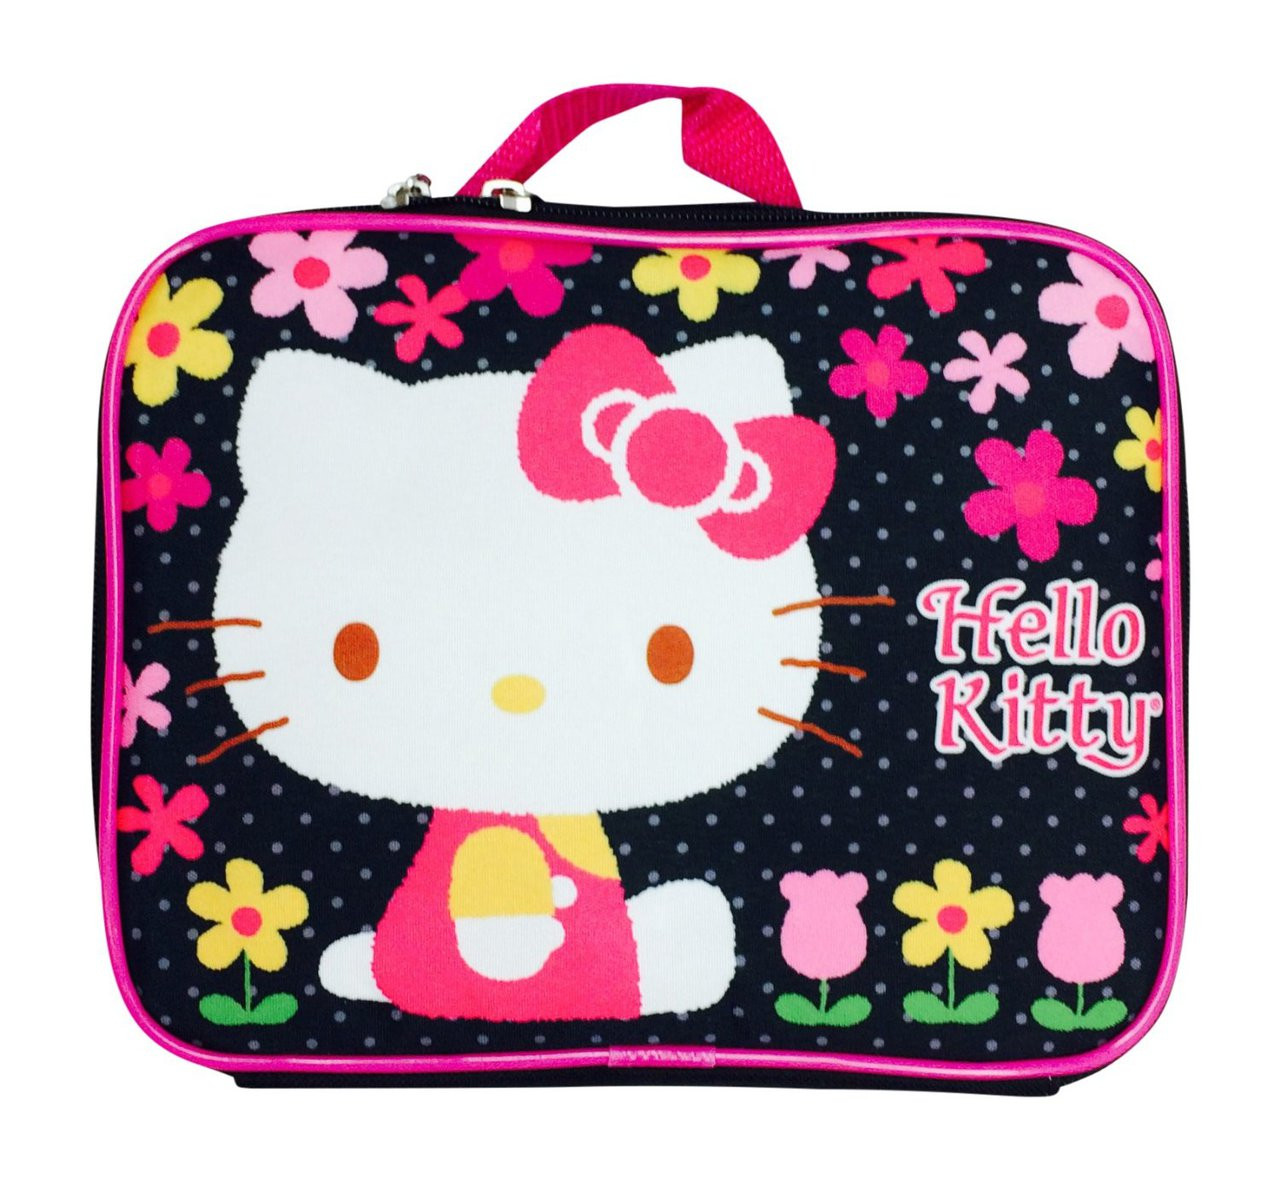 Sanrio Hello Kitty Floral Lunch Bag - Kids Whs 5a487bcef8d97